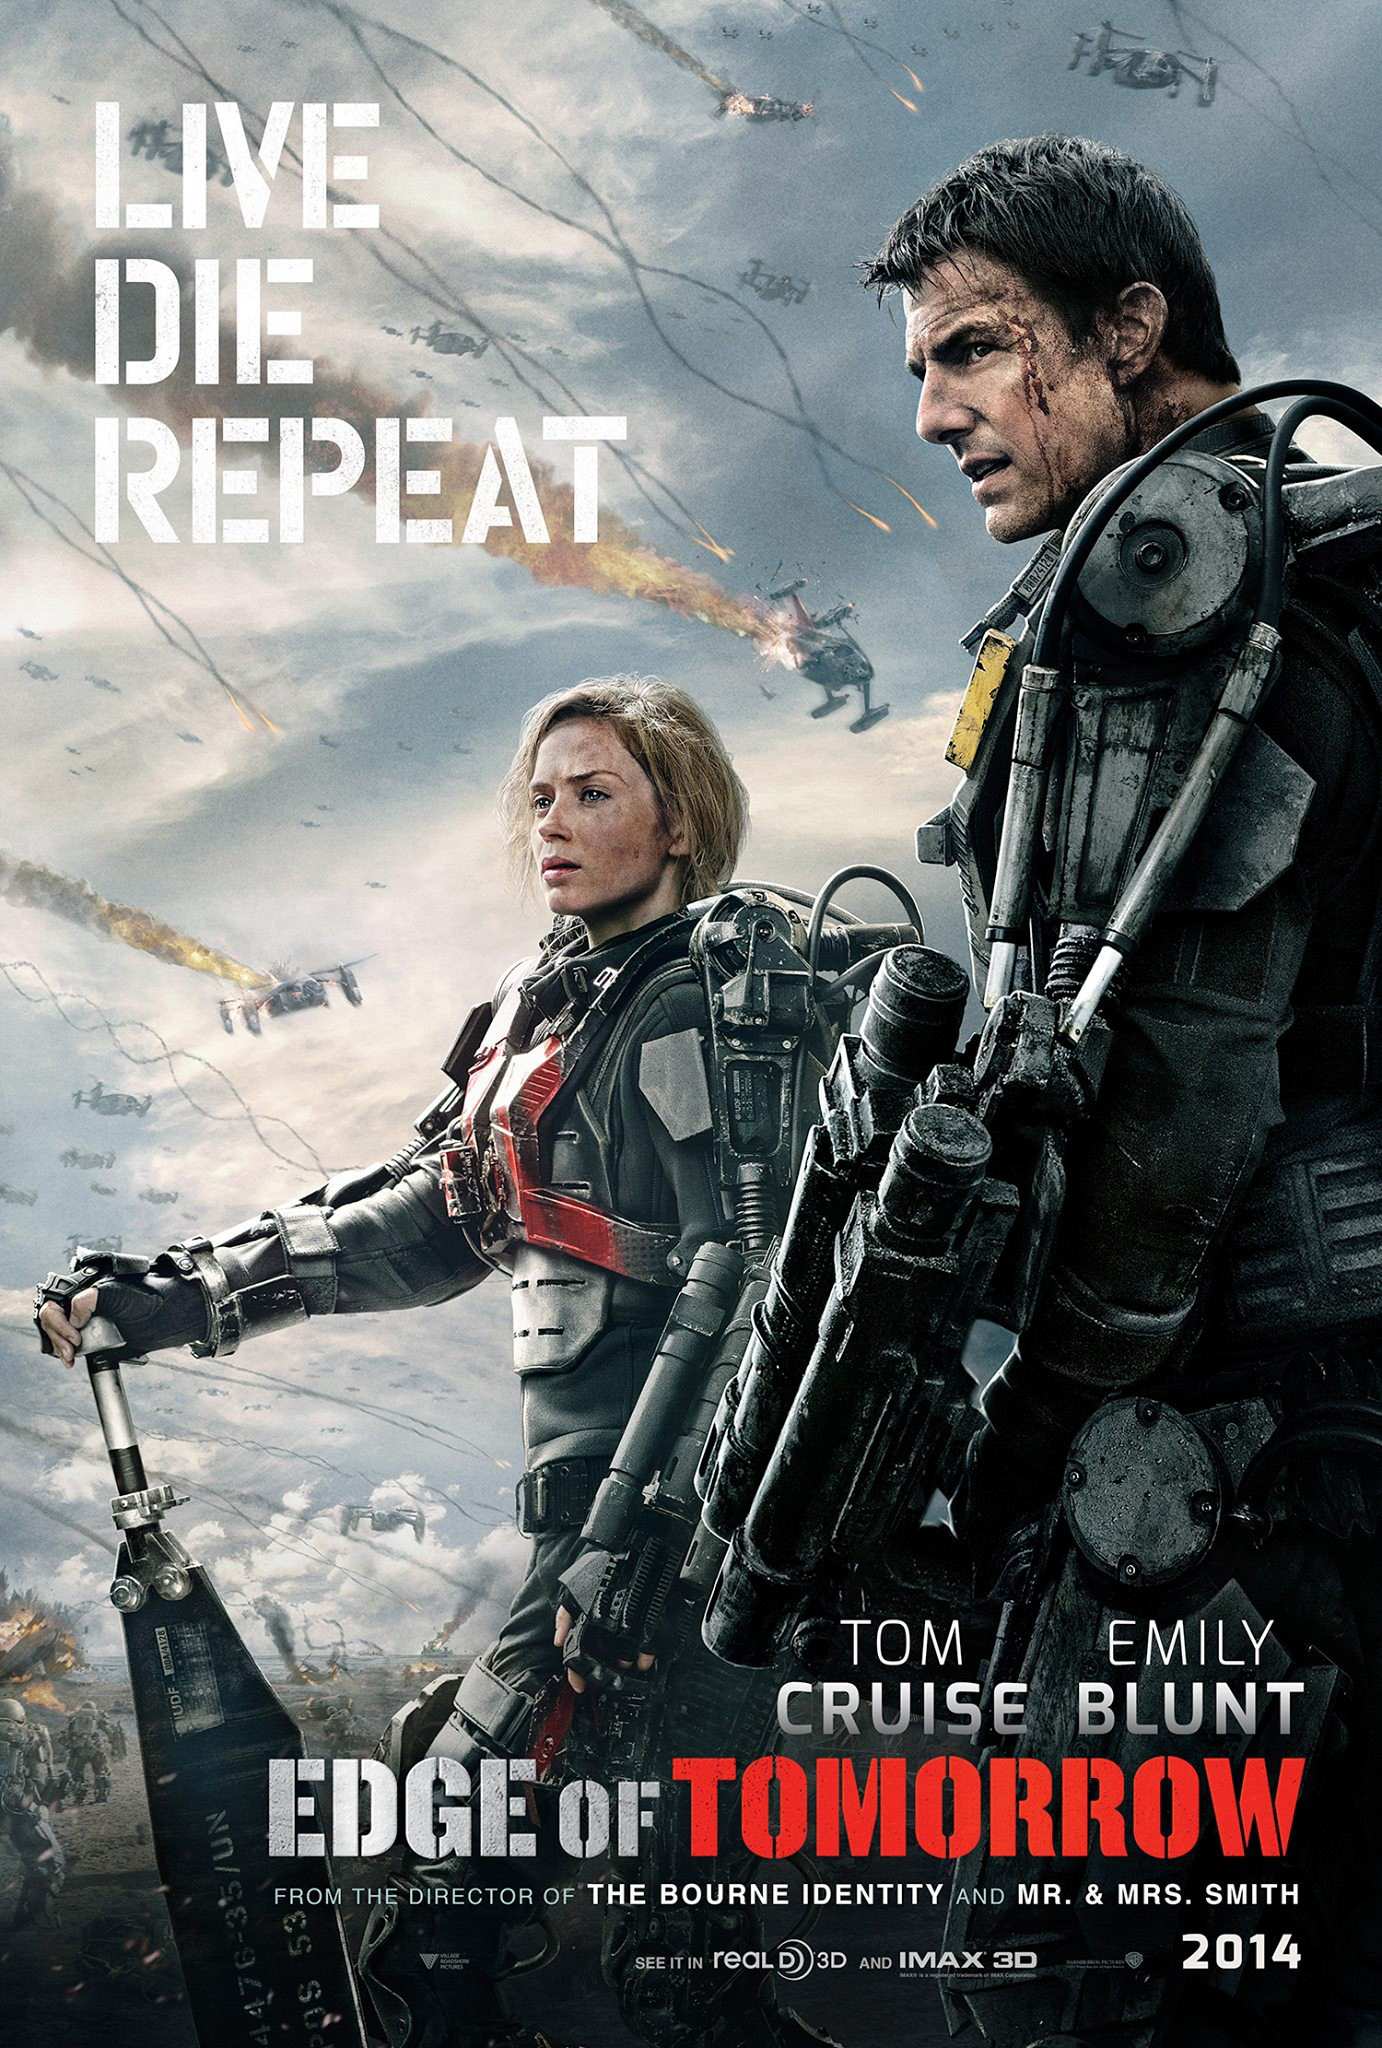 Edge of Tomorrow - Senior Lighting Technical Director @ Sony Pictures Imageworks Vancouver